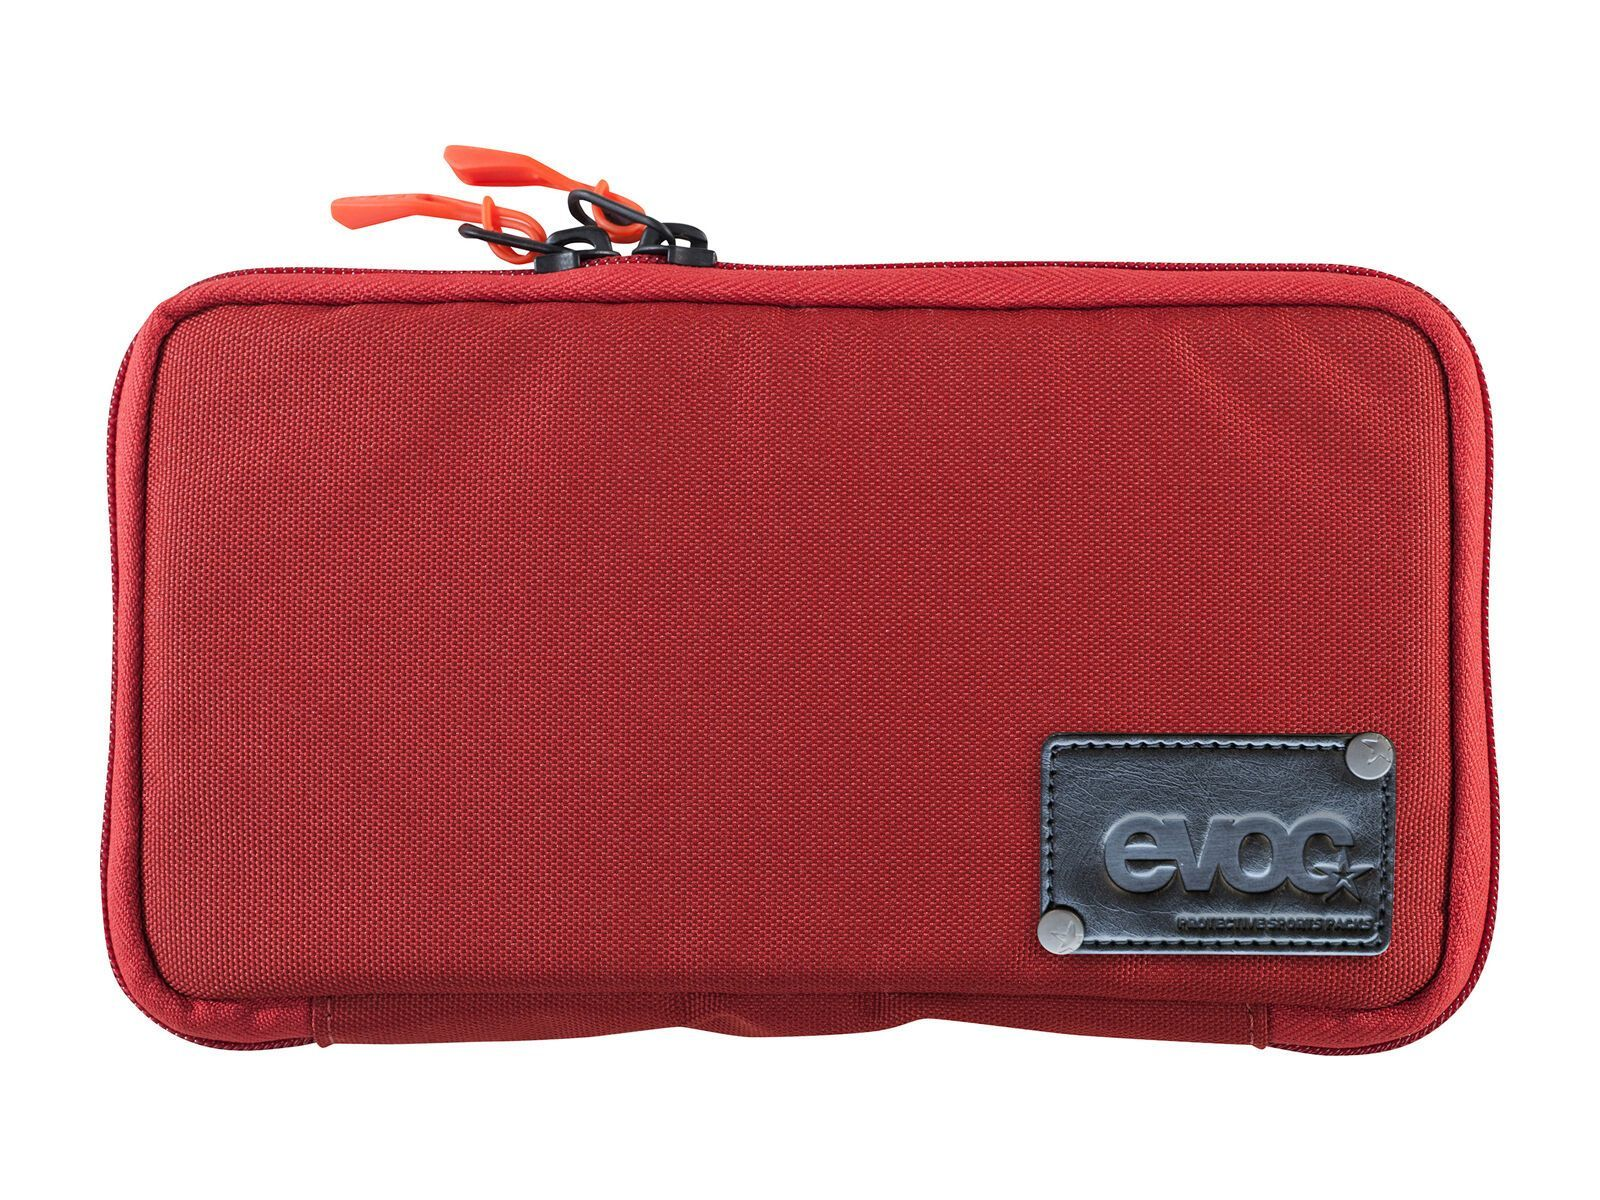 Evoc Travel Case, chili red - Wertsachentasche 450717768